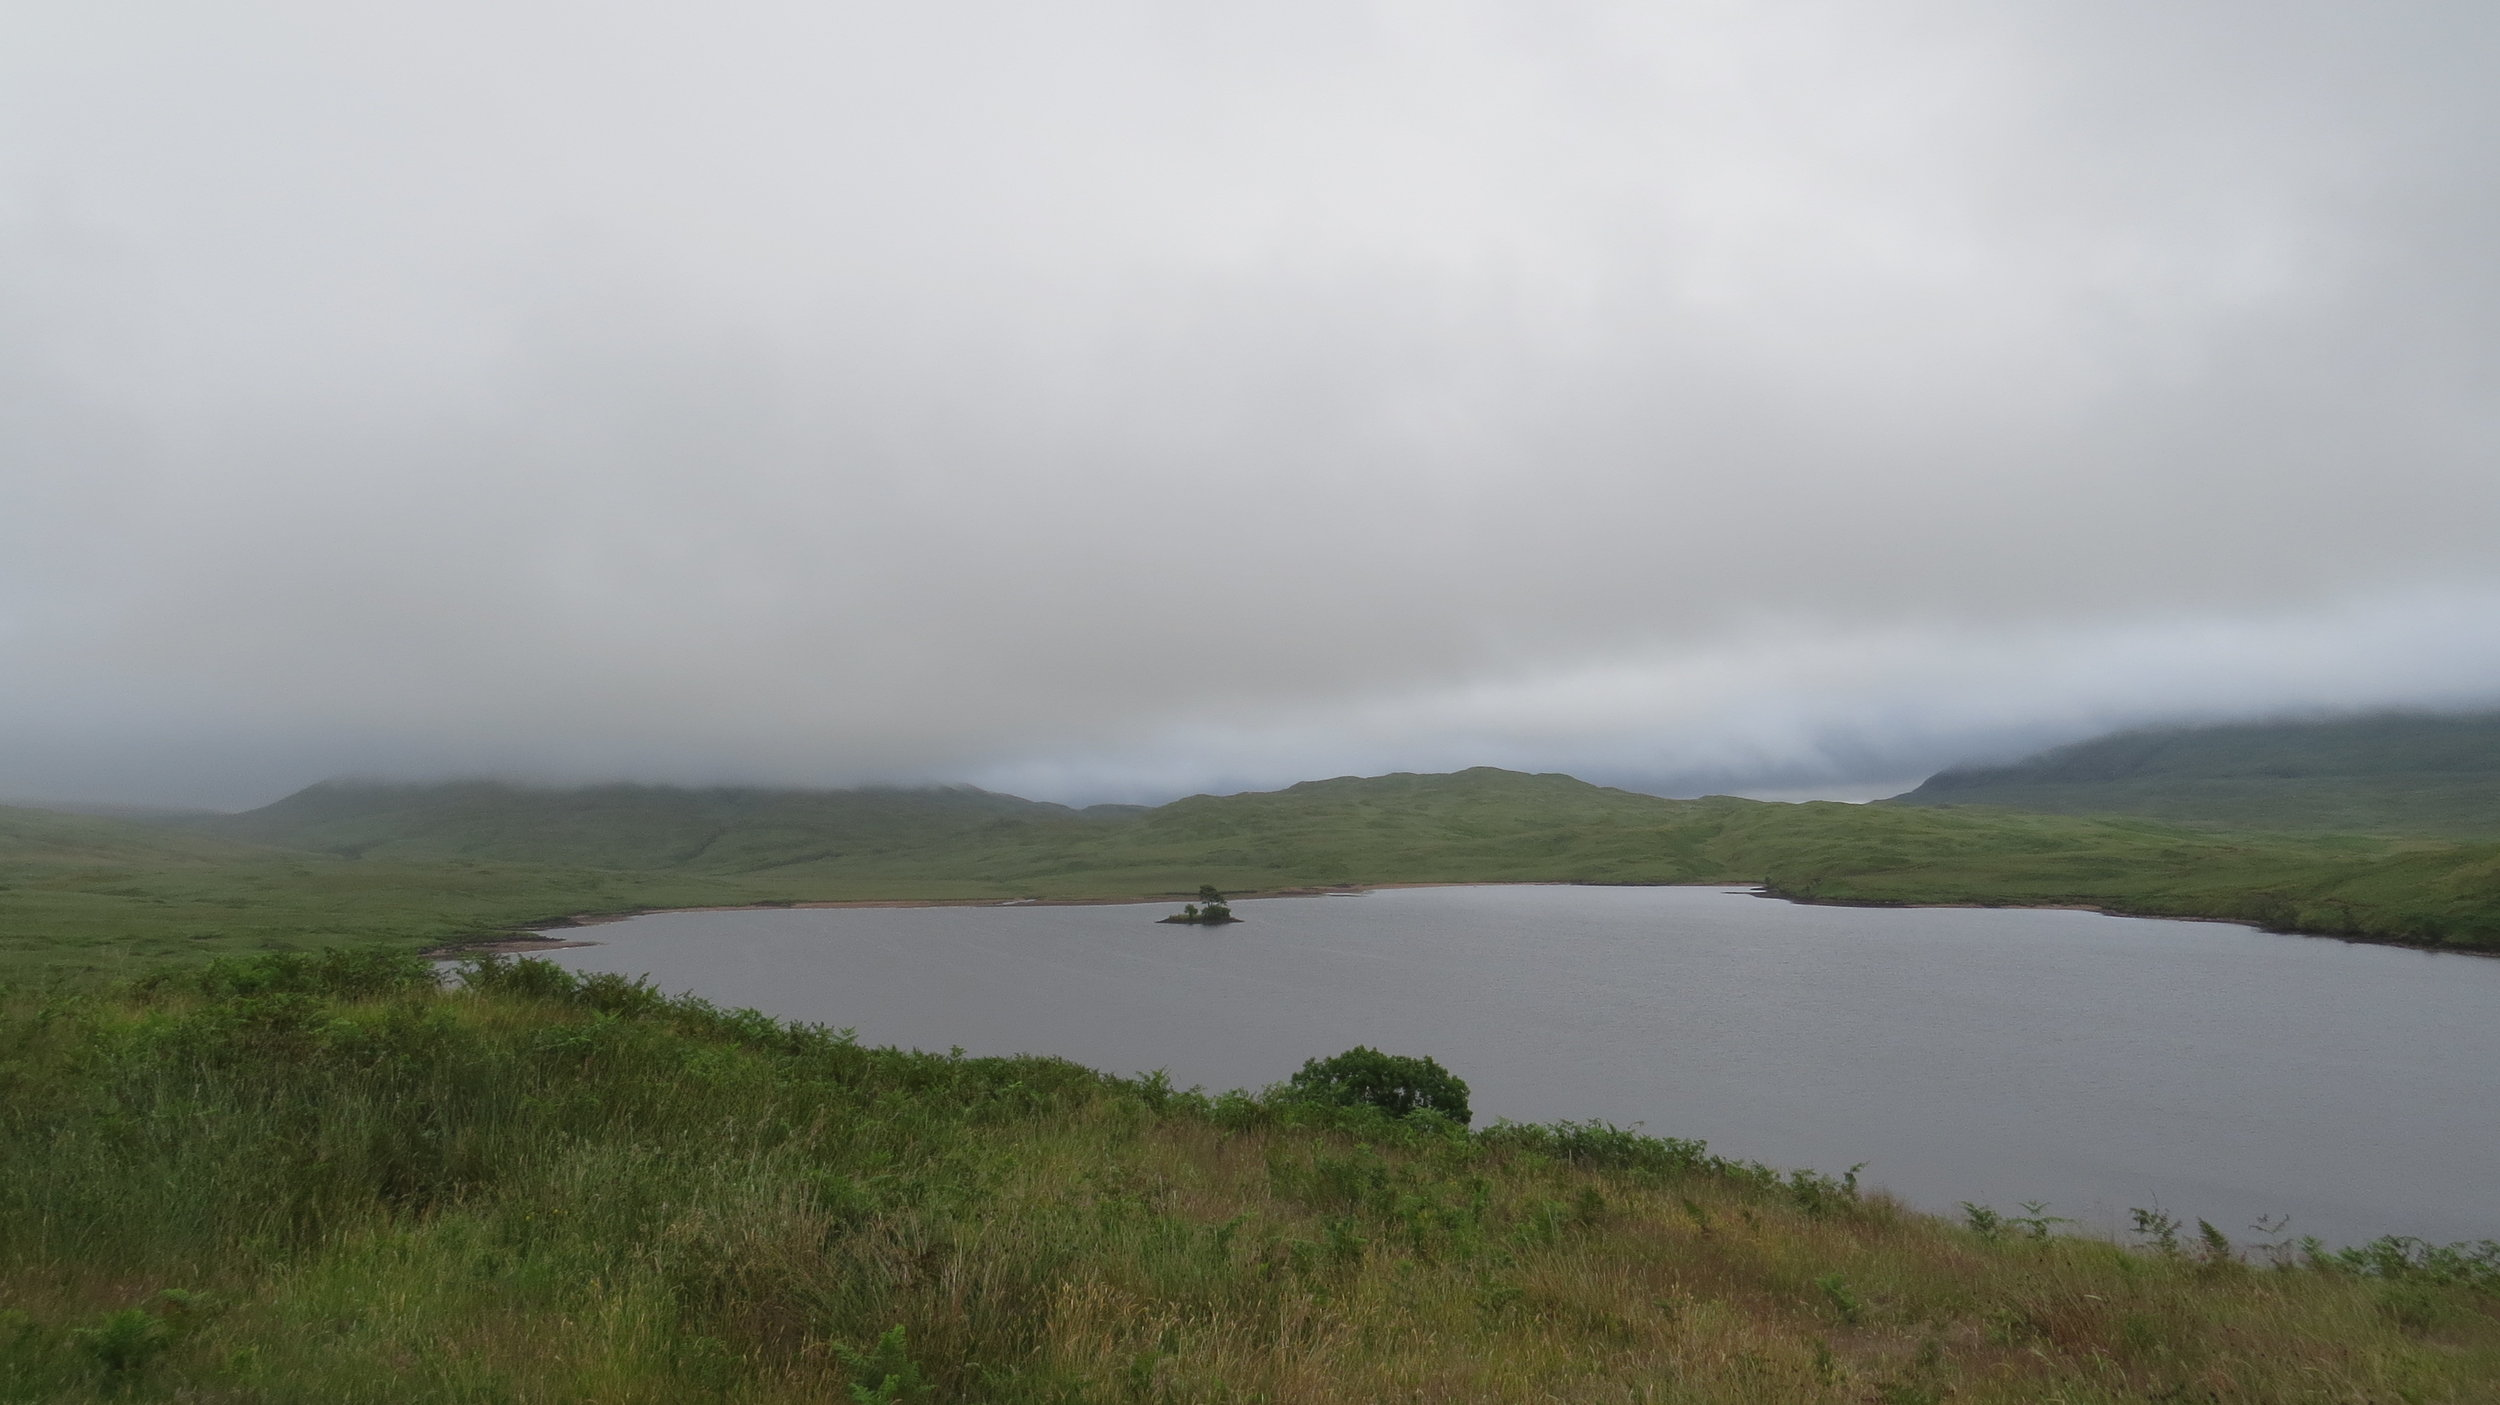 Murky View from Bothy